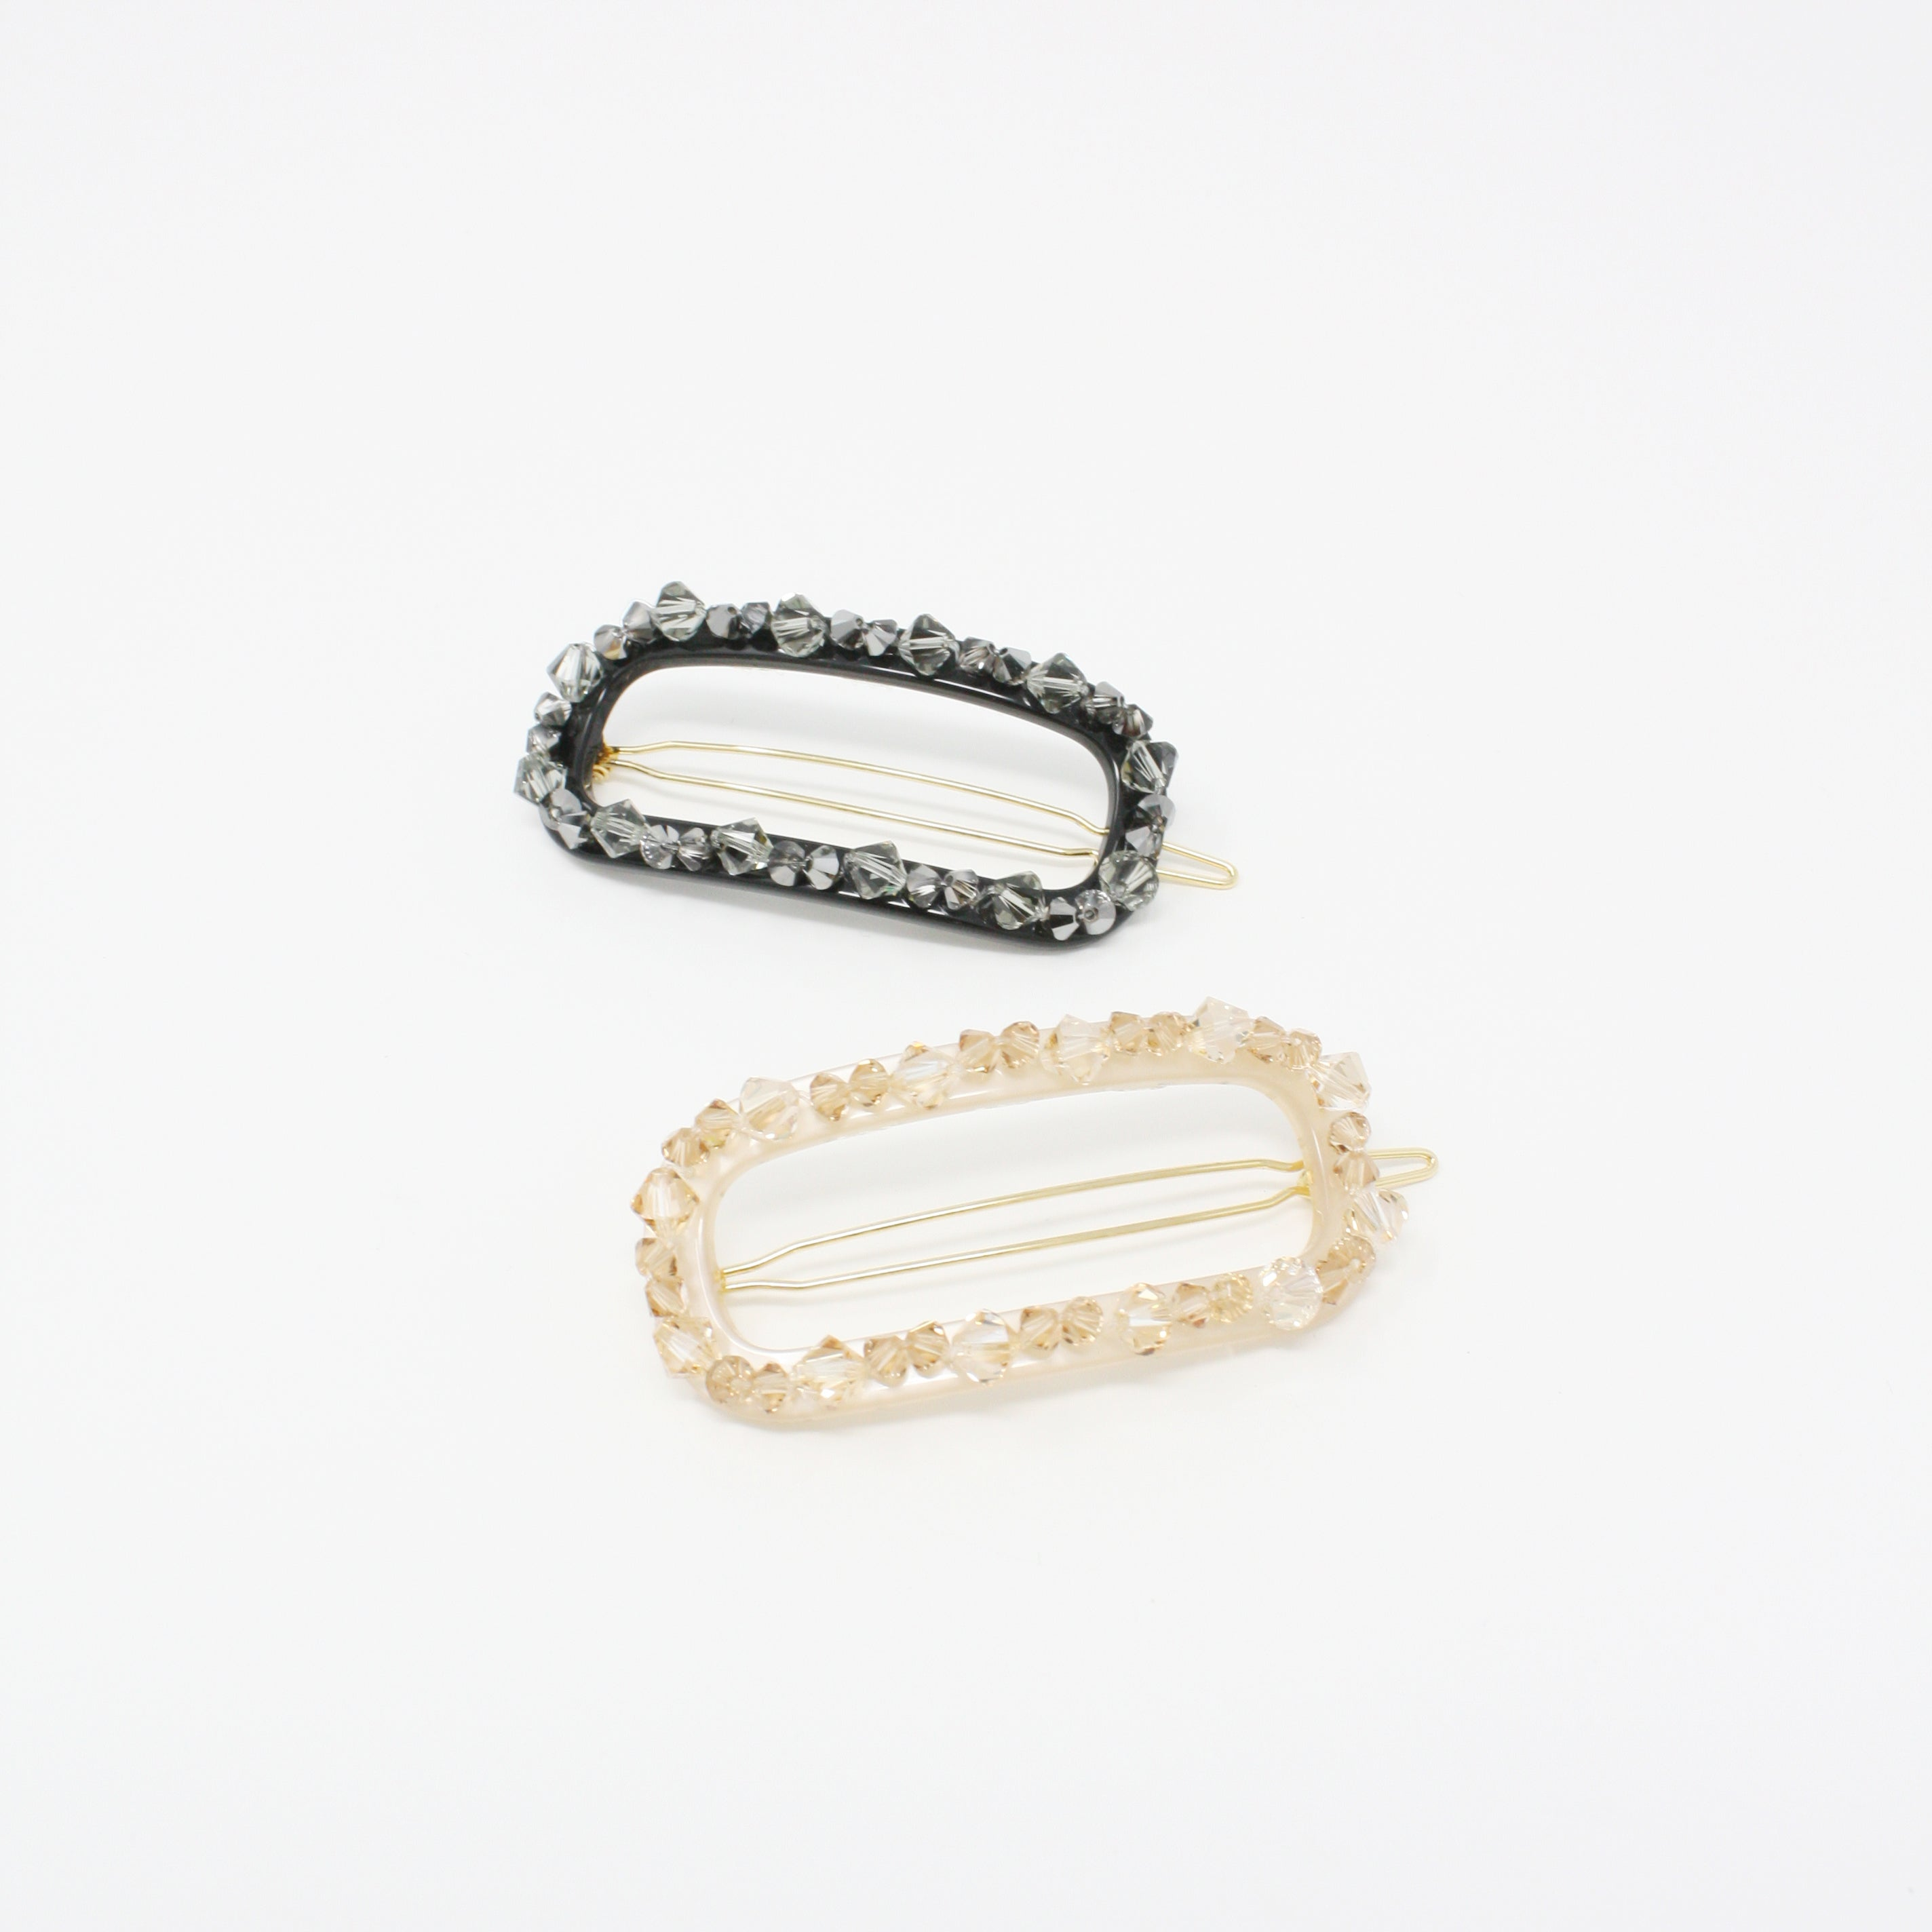 BZSL0397 - Oval Hair Barrette with Multi Crystal